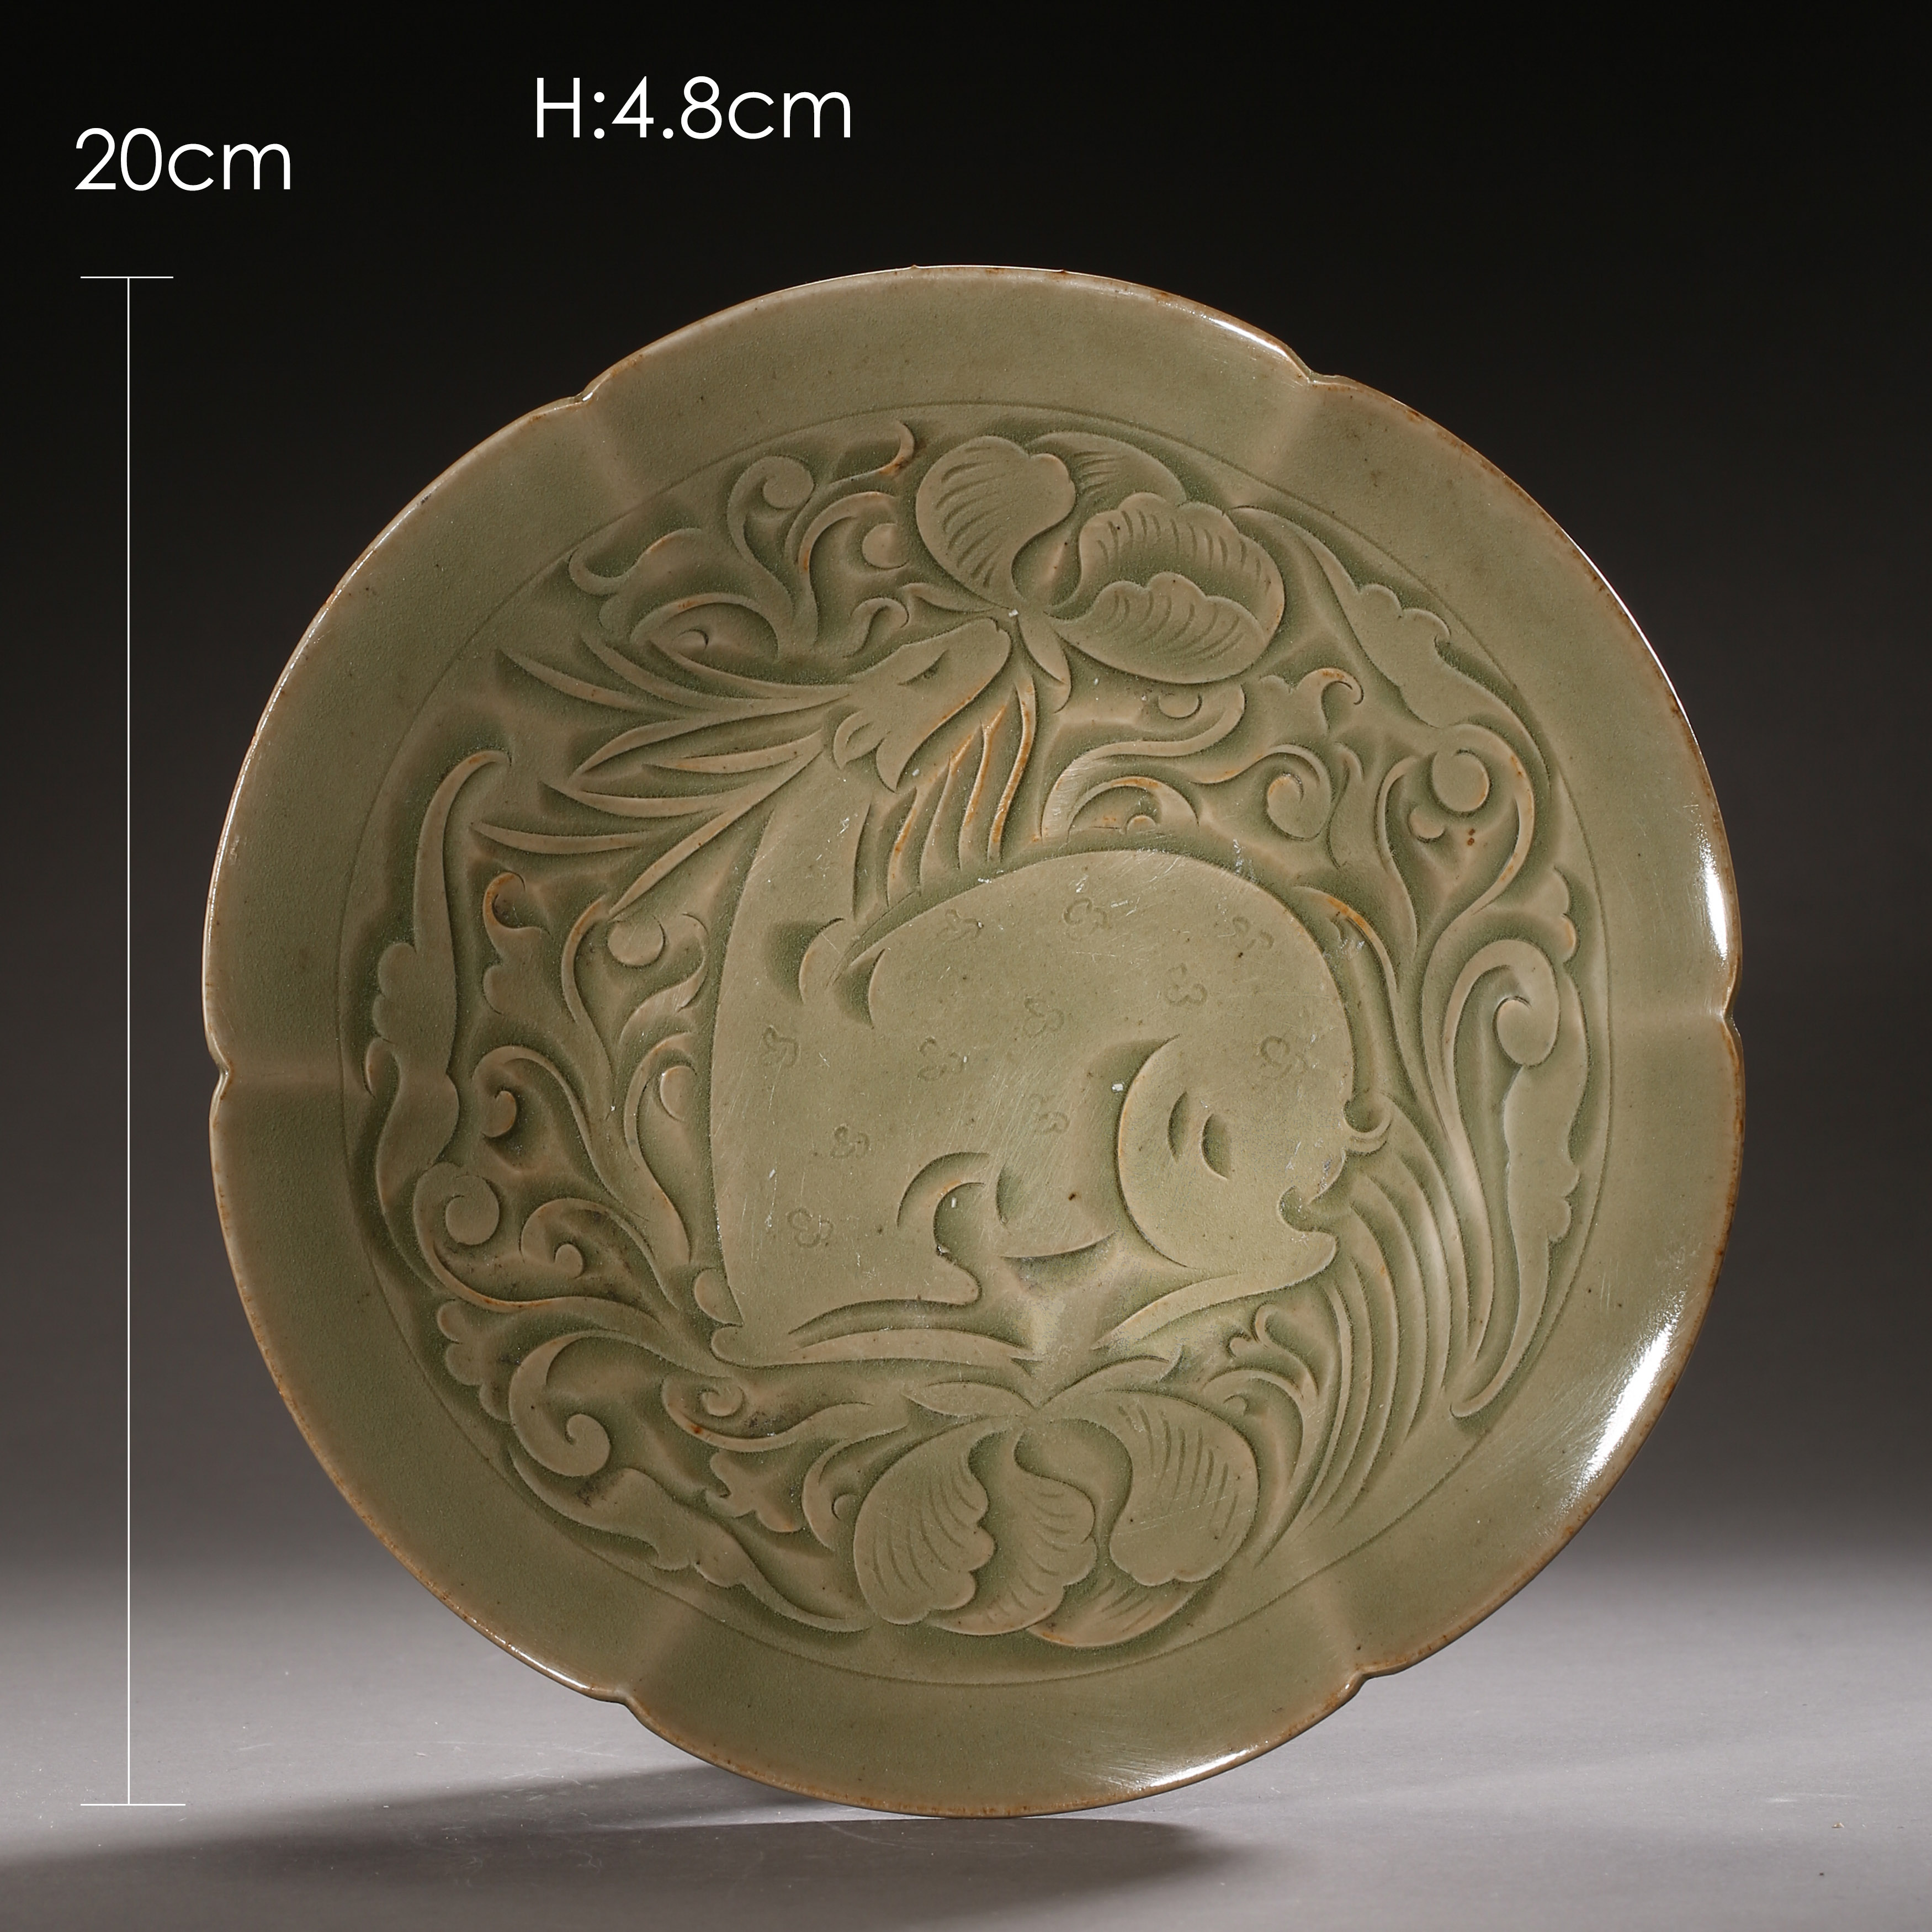 YAOZHOU KILN PLATE WITH RAFFITO DESIGN, NORTHERN SONG DYNASTY, CHINA - Image 3 of 9